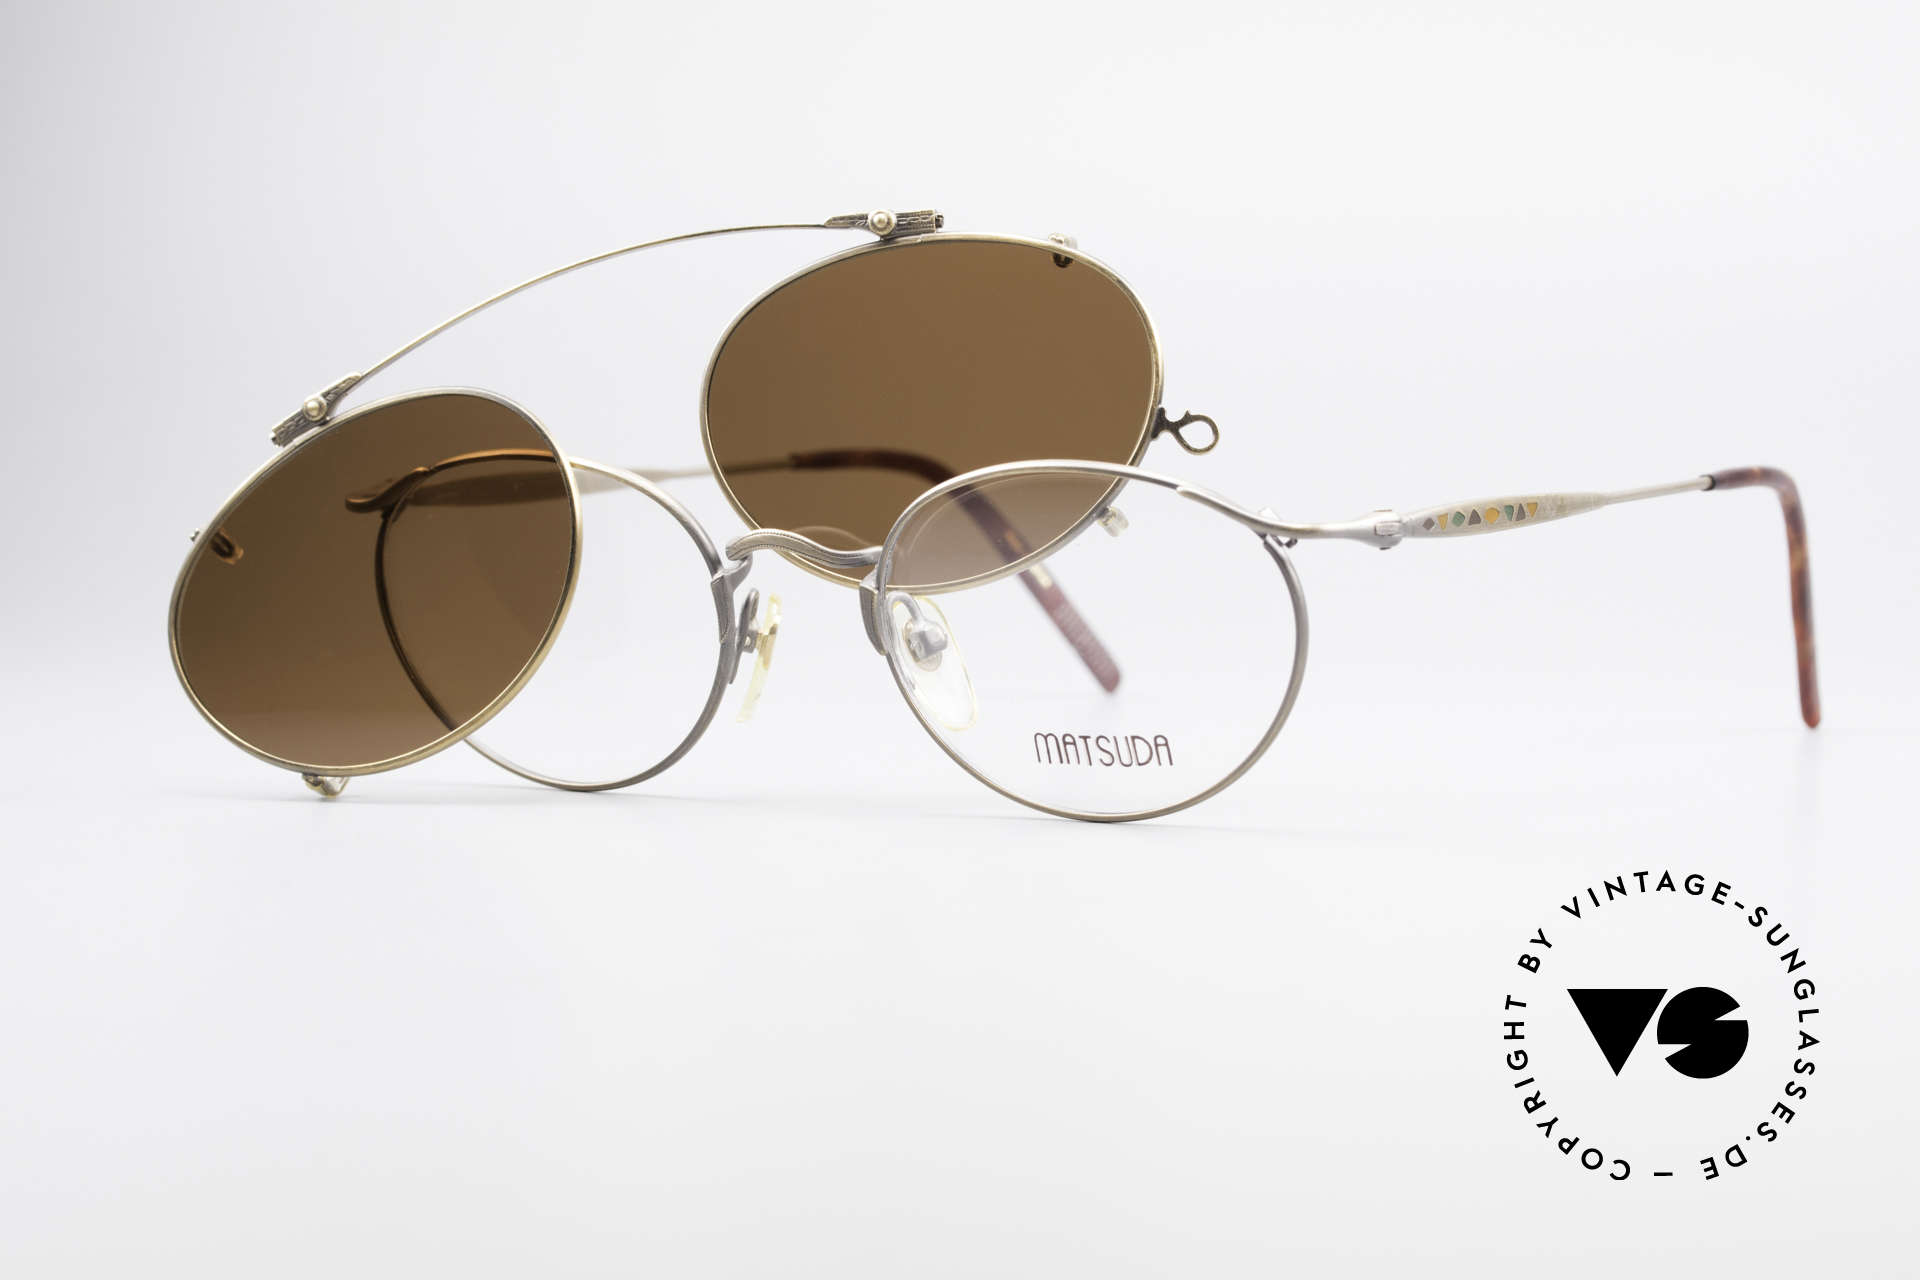 Matsuda 2853 Steampunk Vintage Shades, Size: small, Made for Men